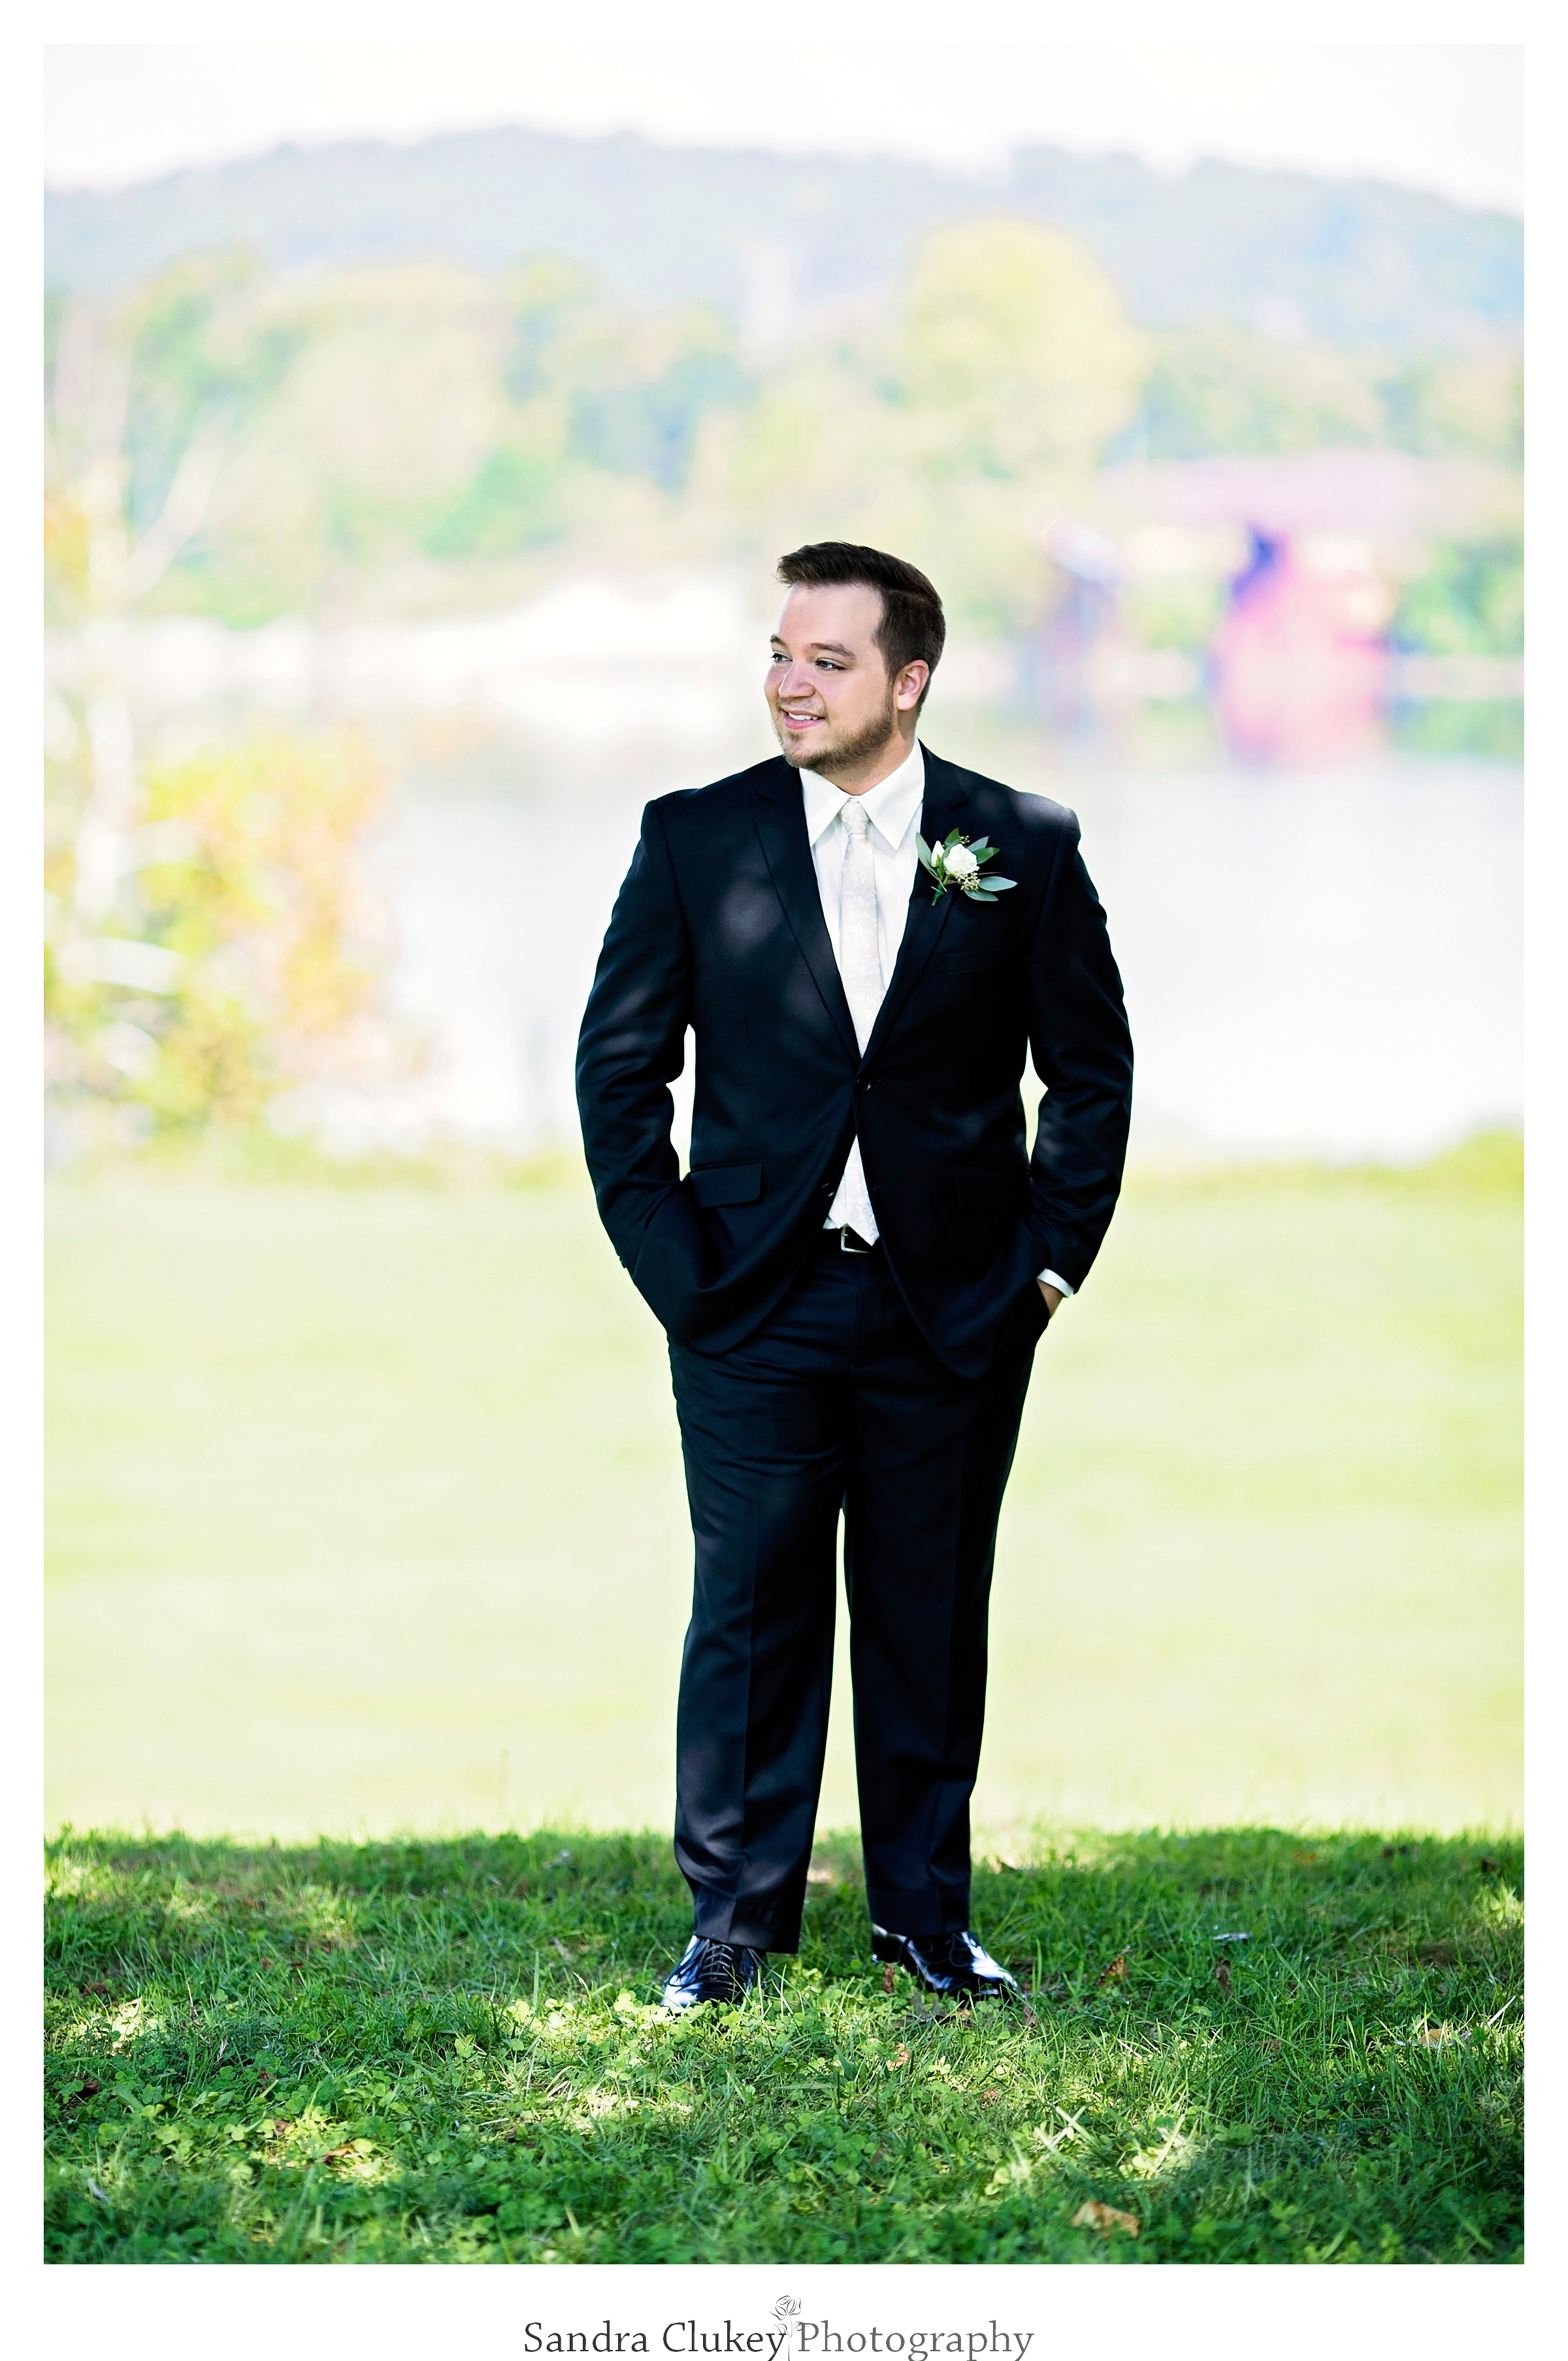 Tennessee RiverPlace, Chattanooga TN. Handsome groom awaits